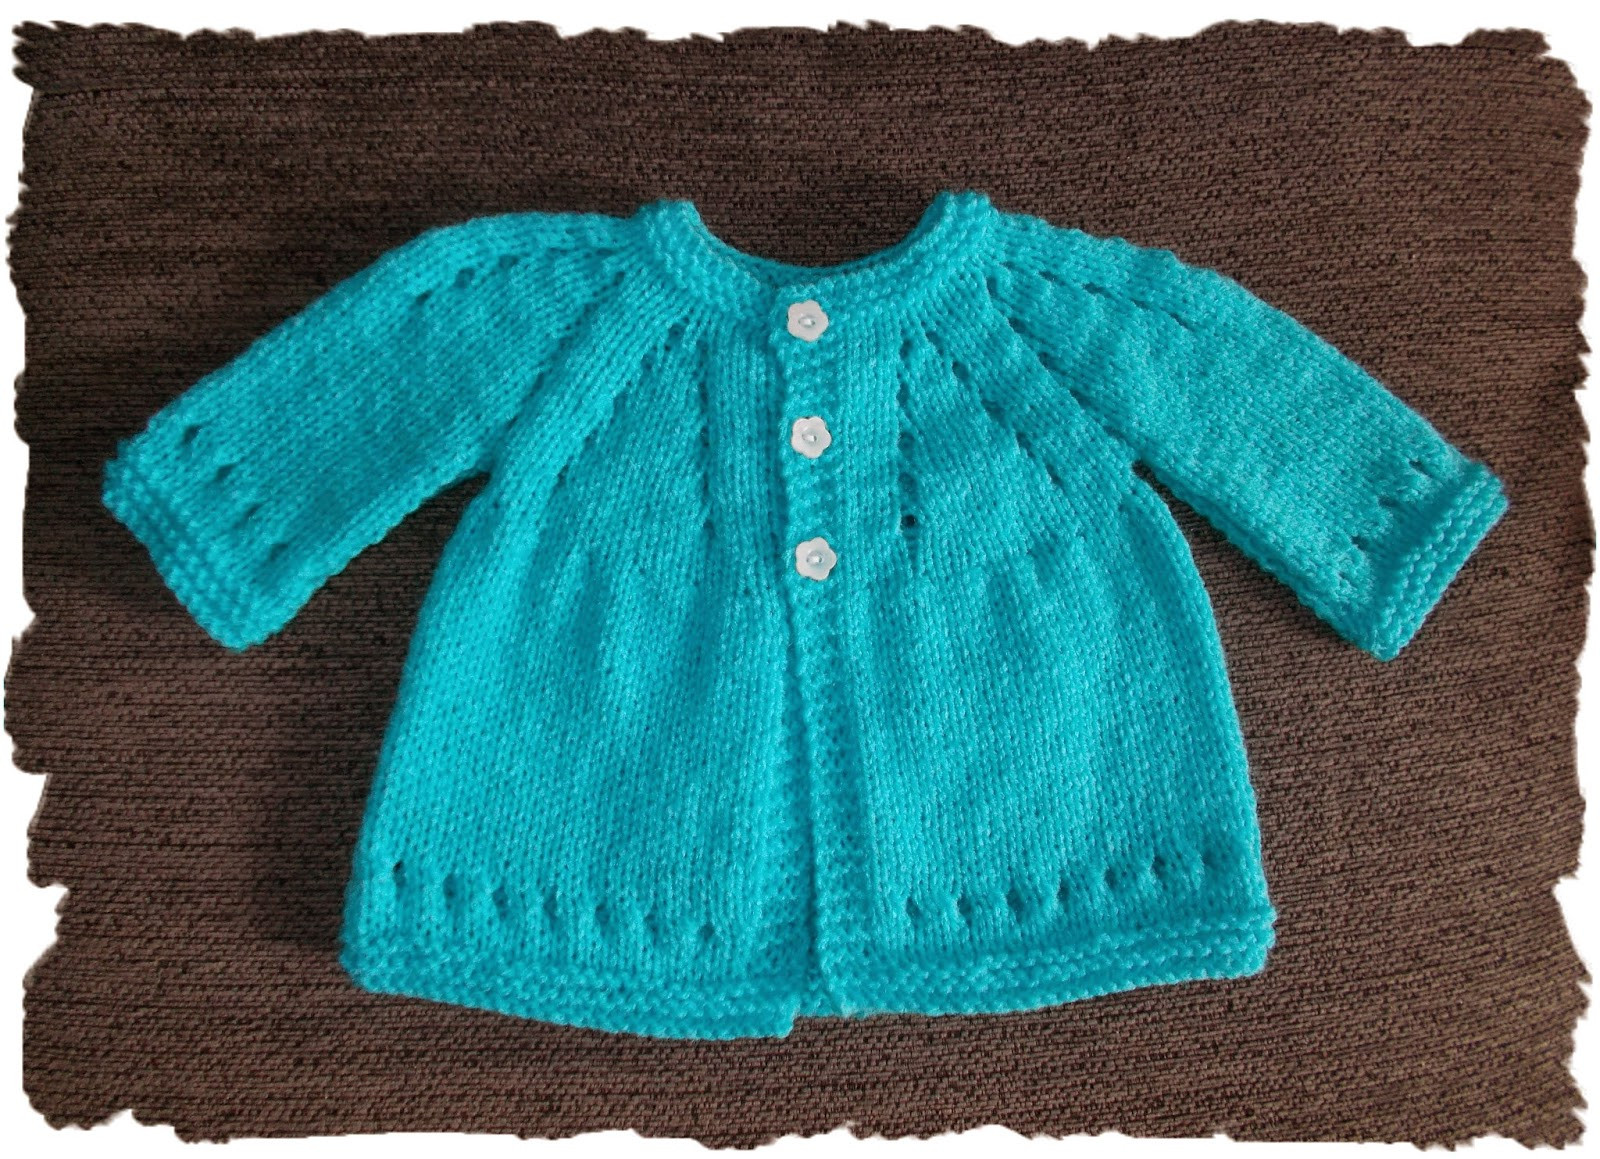 Baby Sweater Patterns Awesome Free Knitting Patterns for Babies Sweaters Of Beautiful 41 Images Baby Sweater Patterns